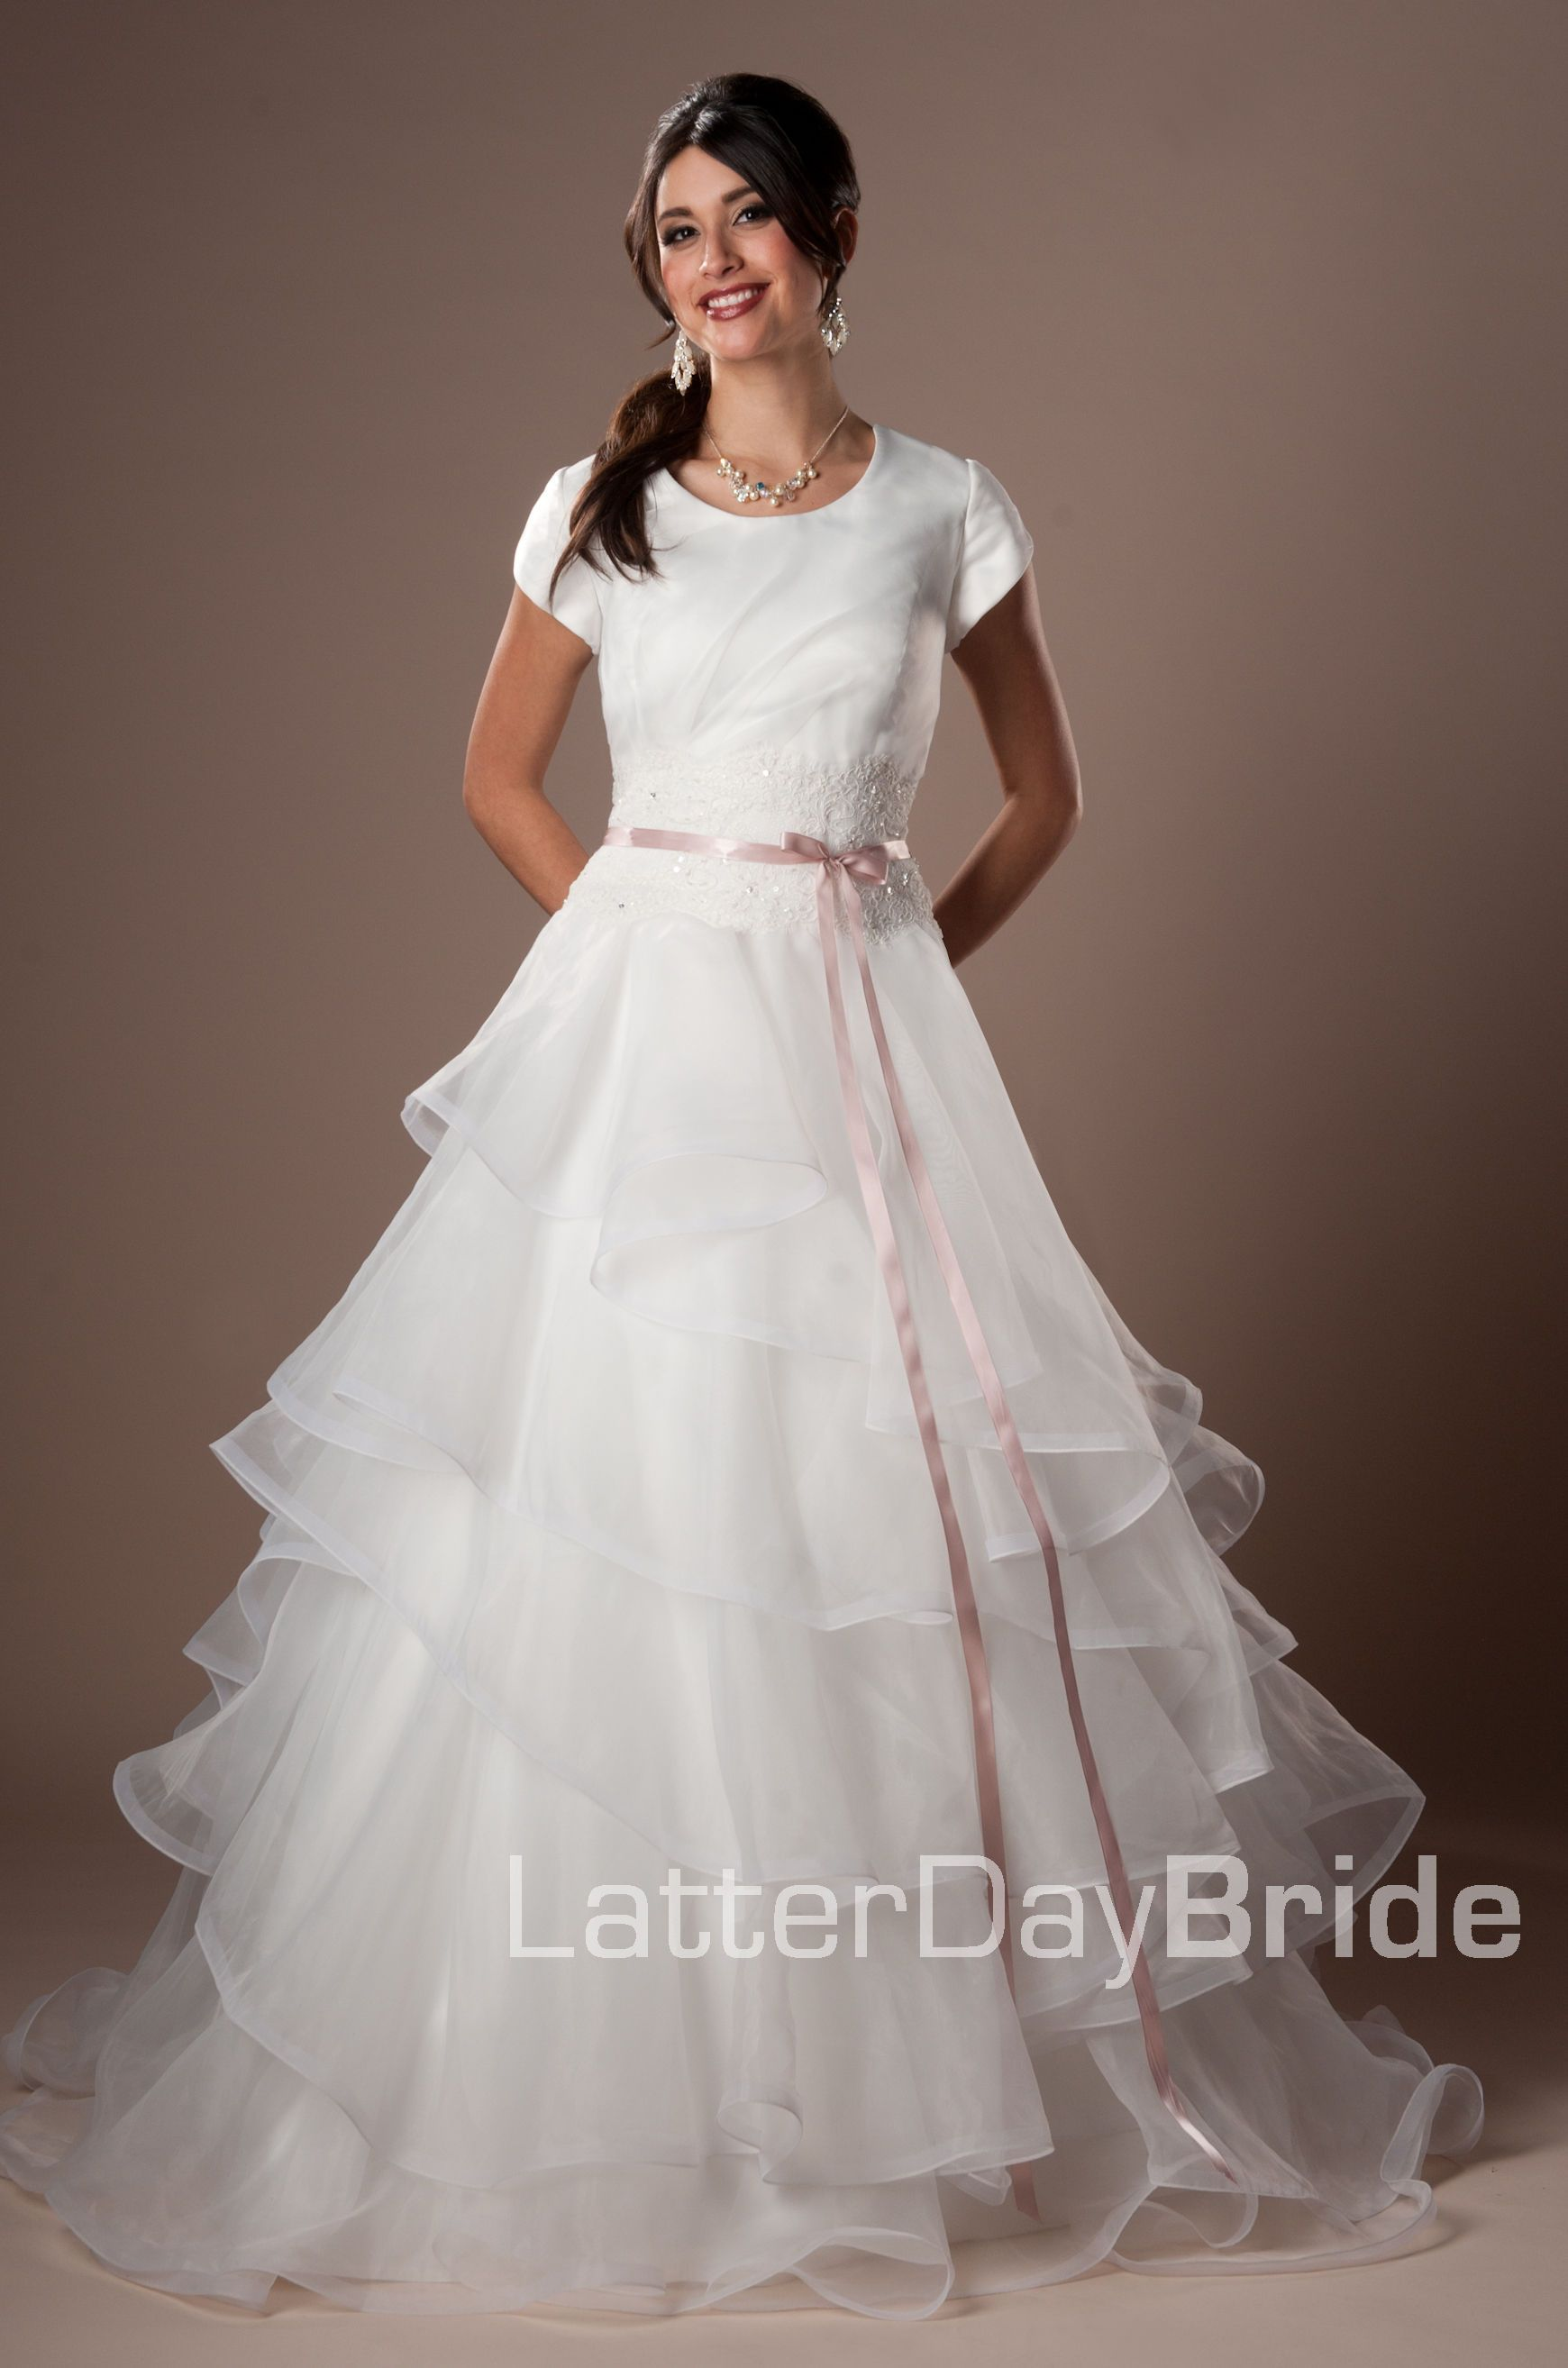 Briella style in ivory with my vera wang blush sash modest wedding